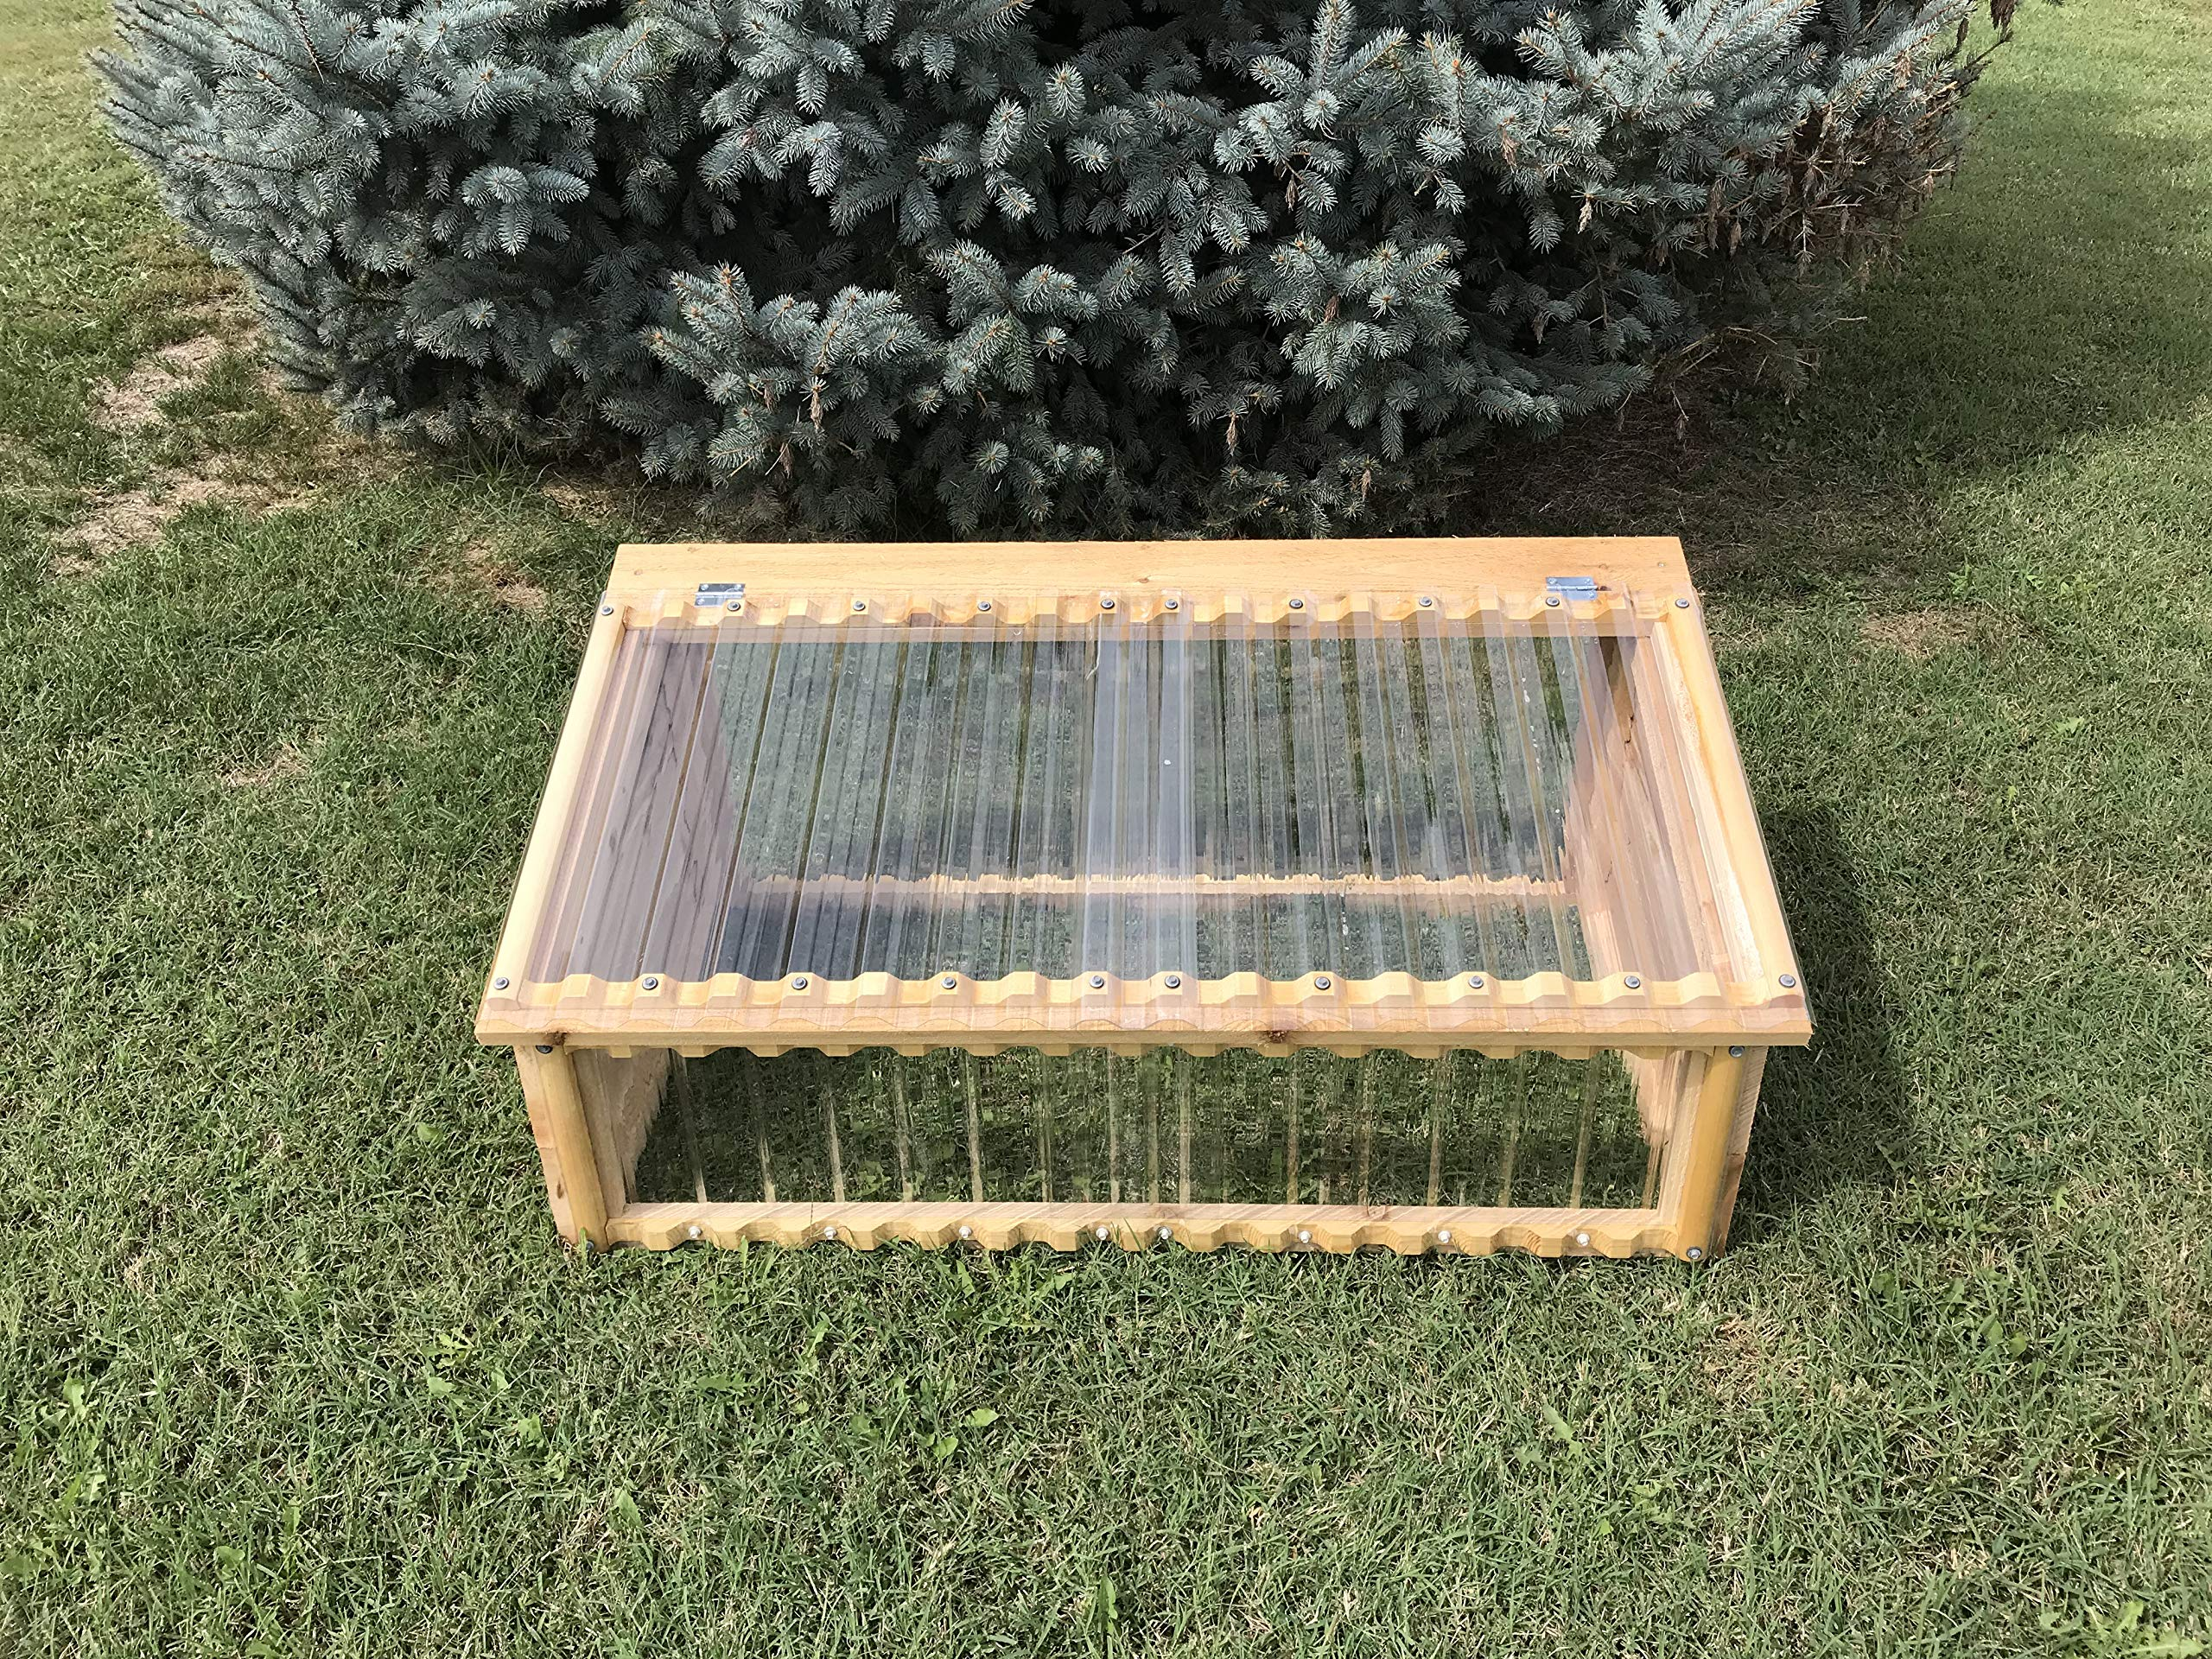 Heavy-Duty Cold Frame - Made in Missouri - Easy Assembly Instructions Included.